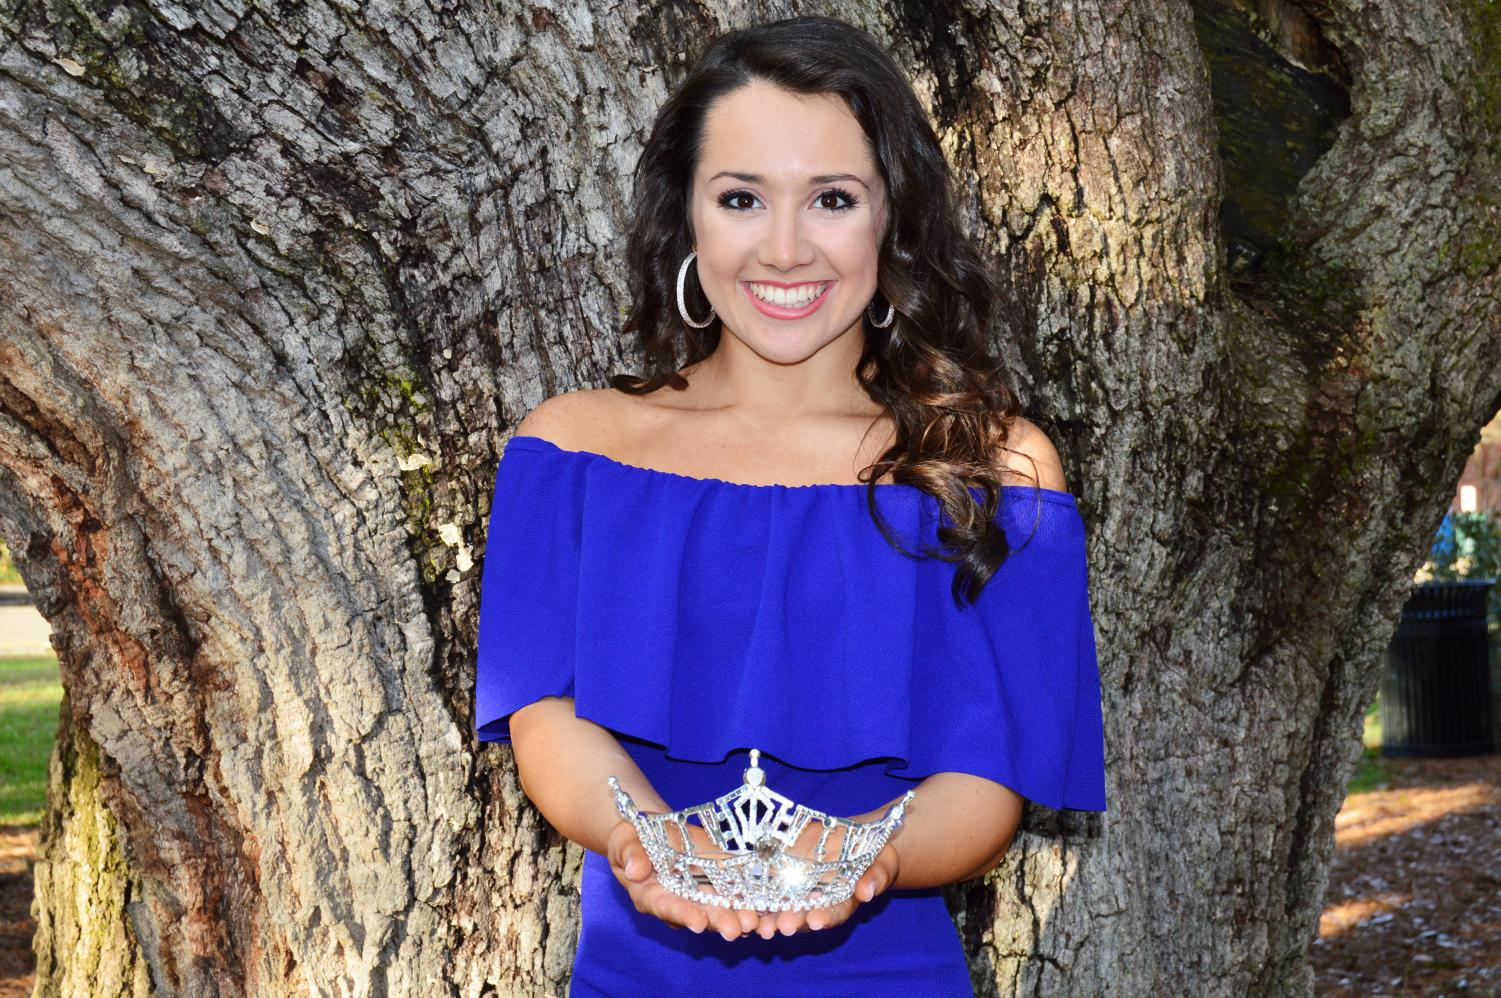 Serving as Miss Southeastern 2018, Alyssa Larose, a junior special education major, acts as an ambassador for the university.